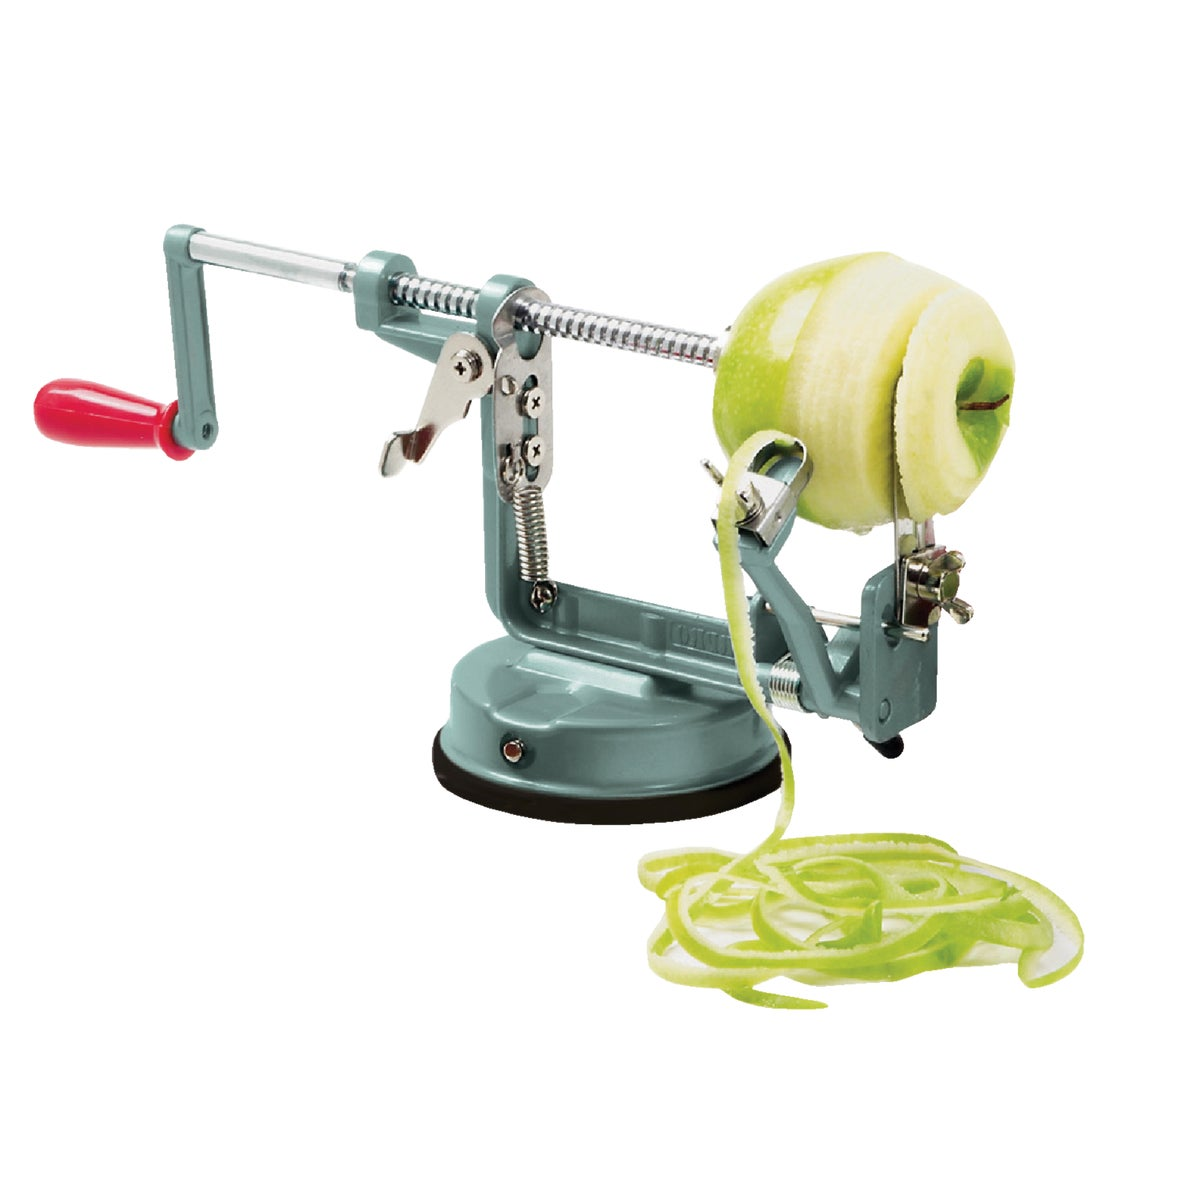 APPLE PARER/SLICER/CORER